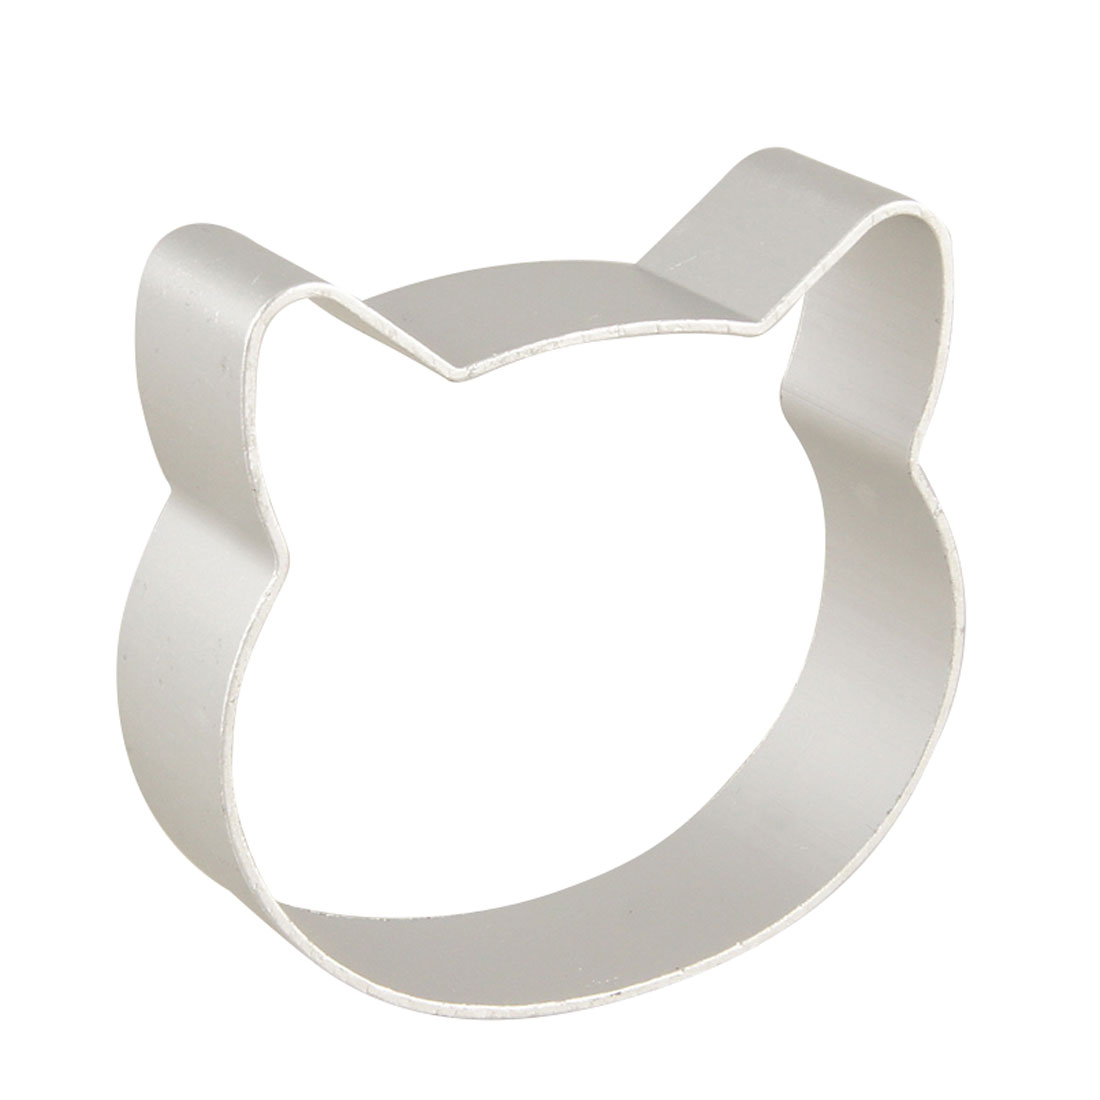 Kitchenware Cartoon Cat Head Design Cookie Biscuit Cutter Cake Mold